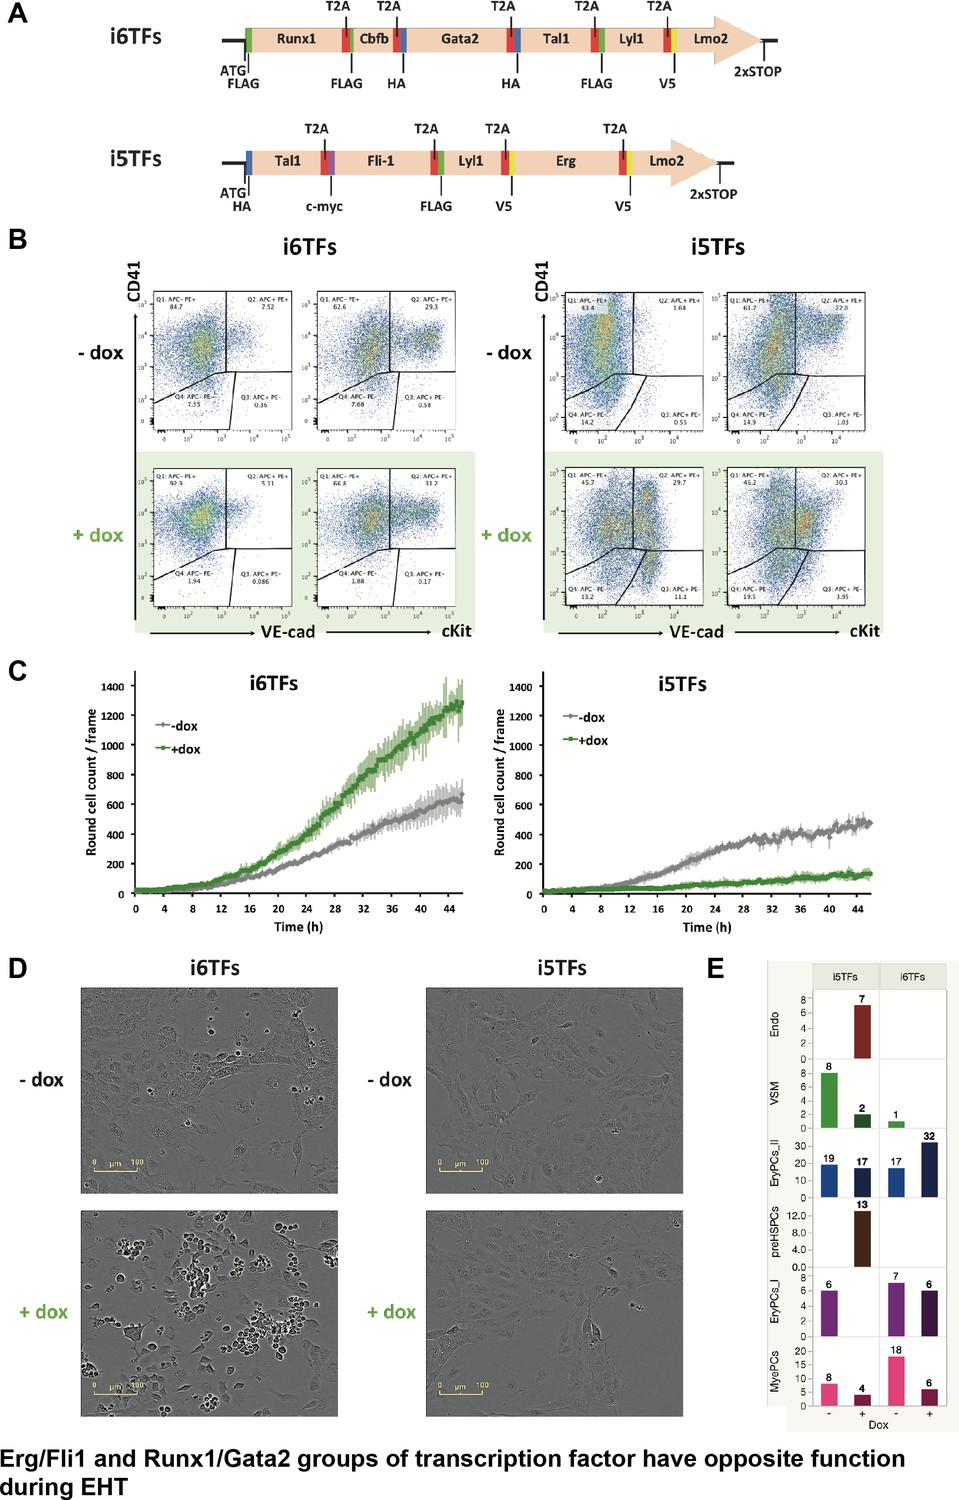 Single Cell Transcriptomics Reveals A New Dynamical Function Of Dish 625 Wiring Diagram The Erg Fli1 And Runx1 Gata2 Groups Transcription Factors Have Opposite Functions During Eht